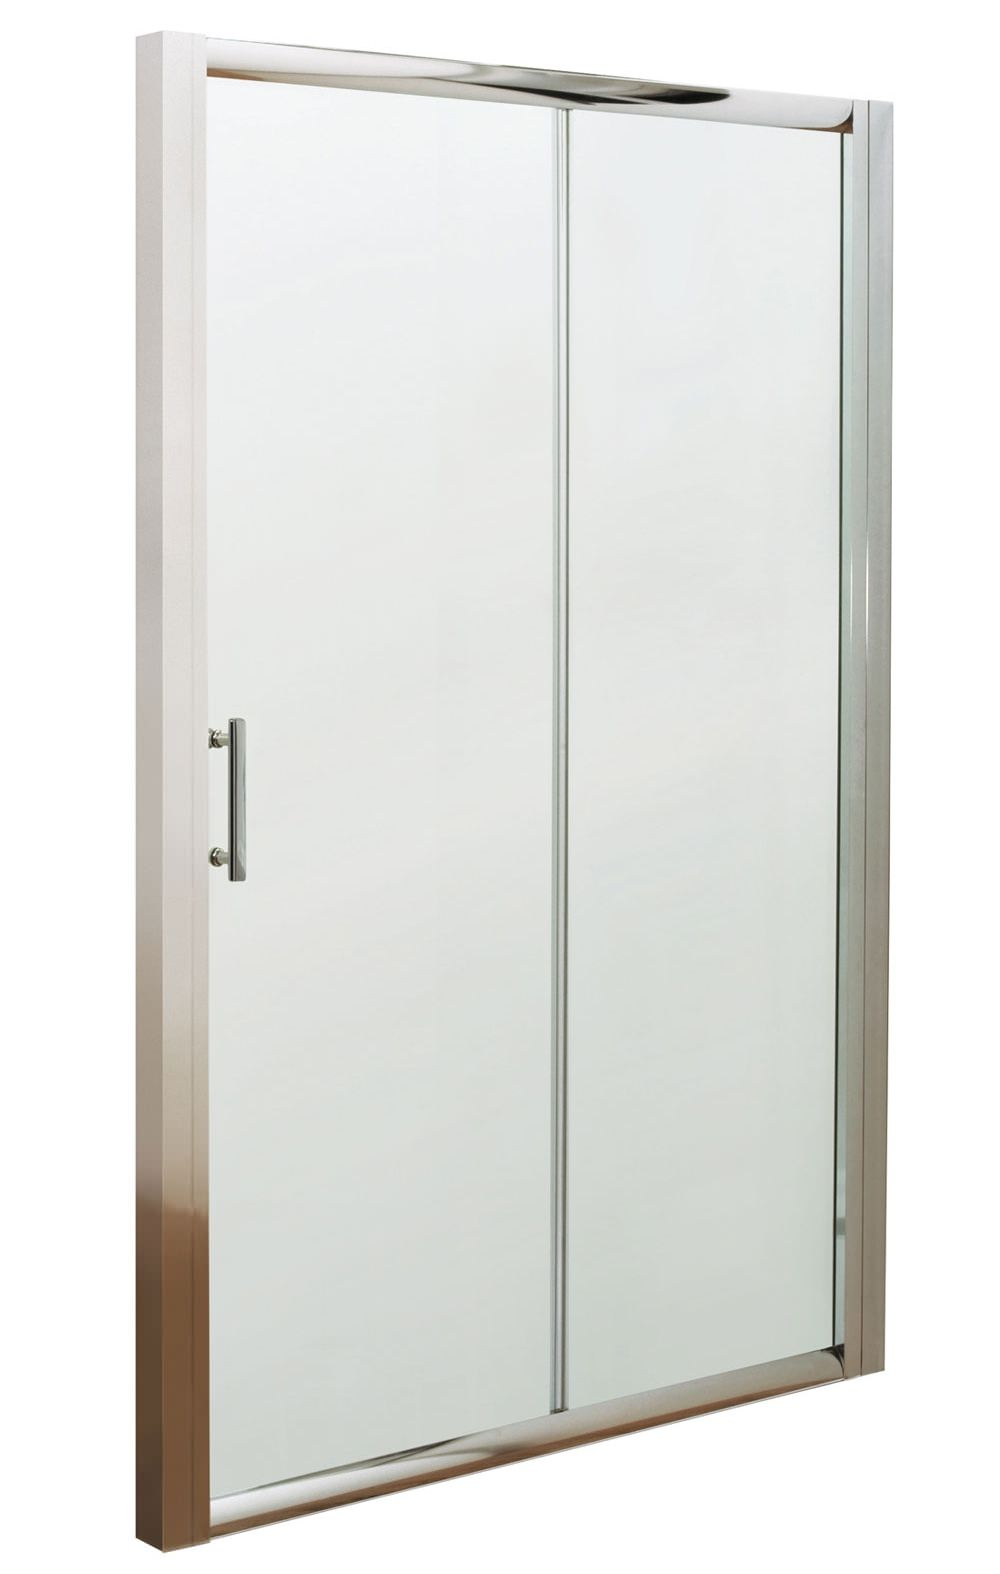 Beo Framed Single Sliding Shower Door 1400mm